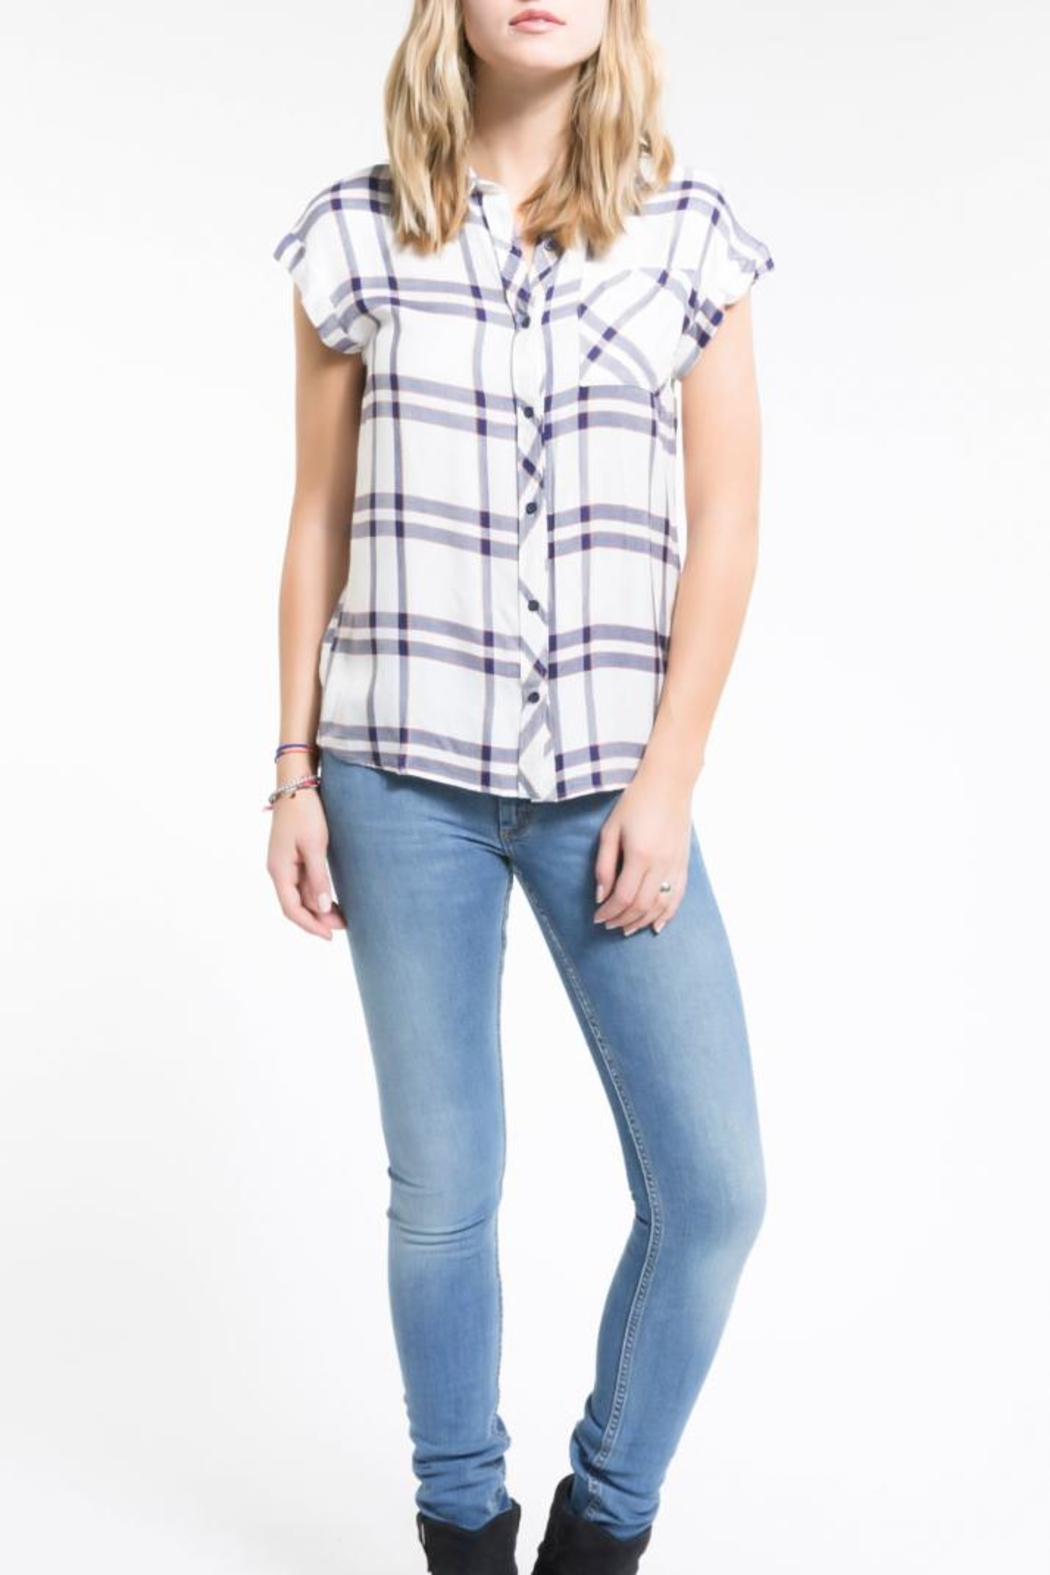 PPLA Clothing Flint Button Down Top - Main Image